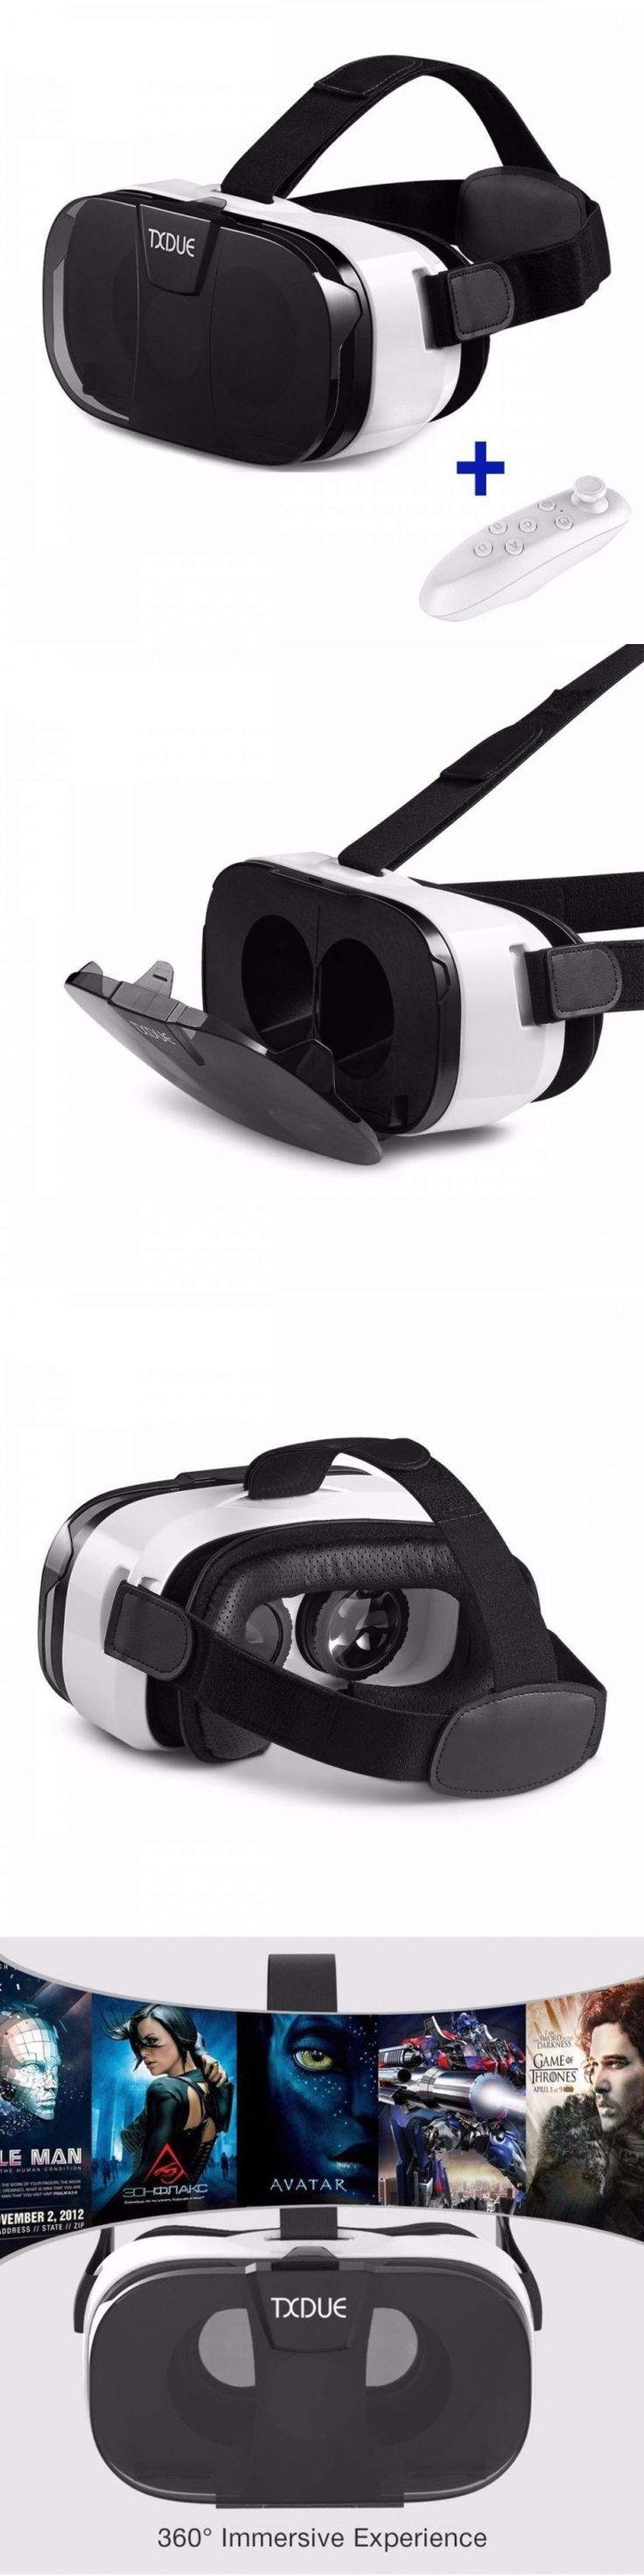 3D TV Glasses and Accessories: 3D Vr Headset, Txdue Virtual Reality Goggles With Bluetooth Remote Controller, U BUY IT NOW ONLY: $30.56